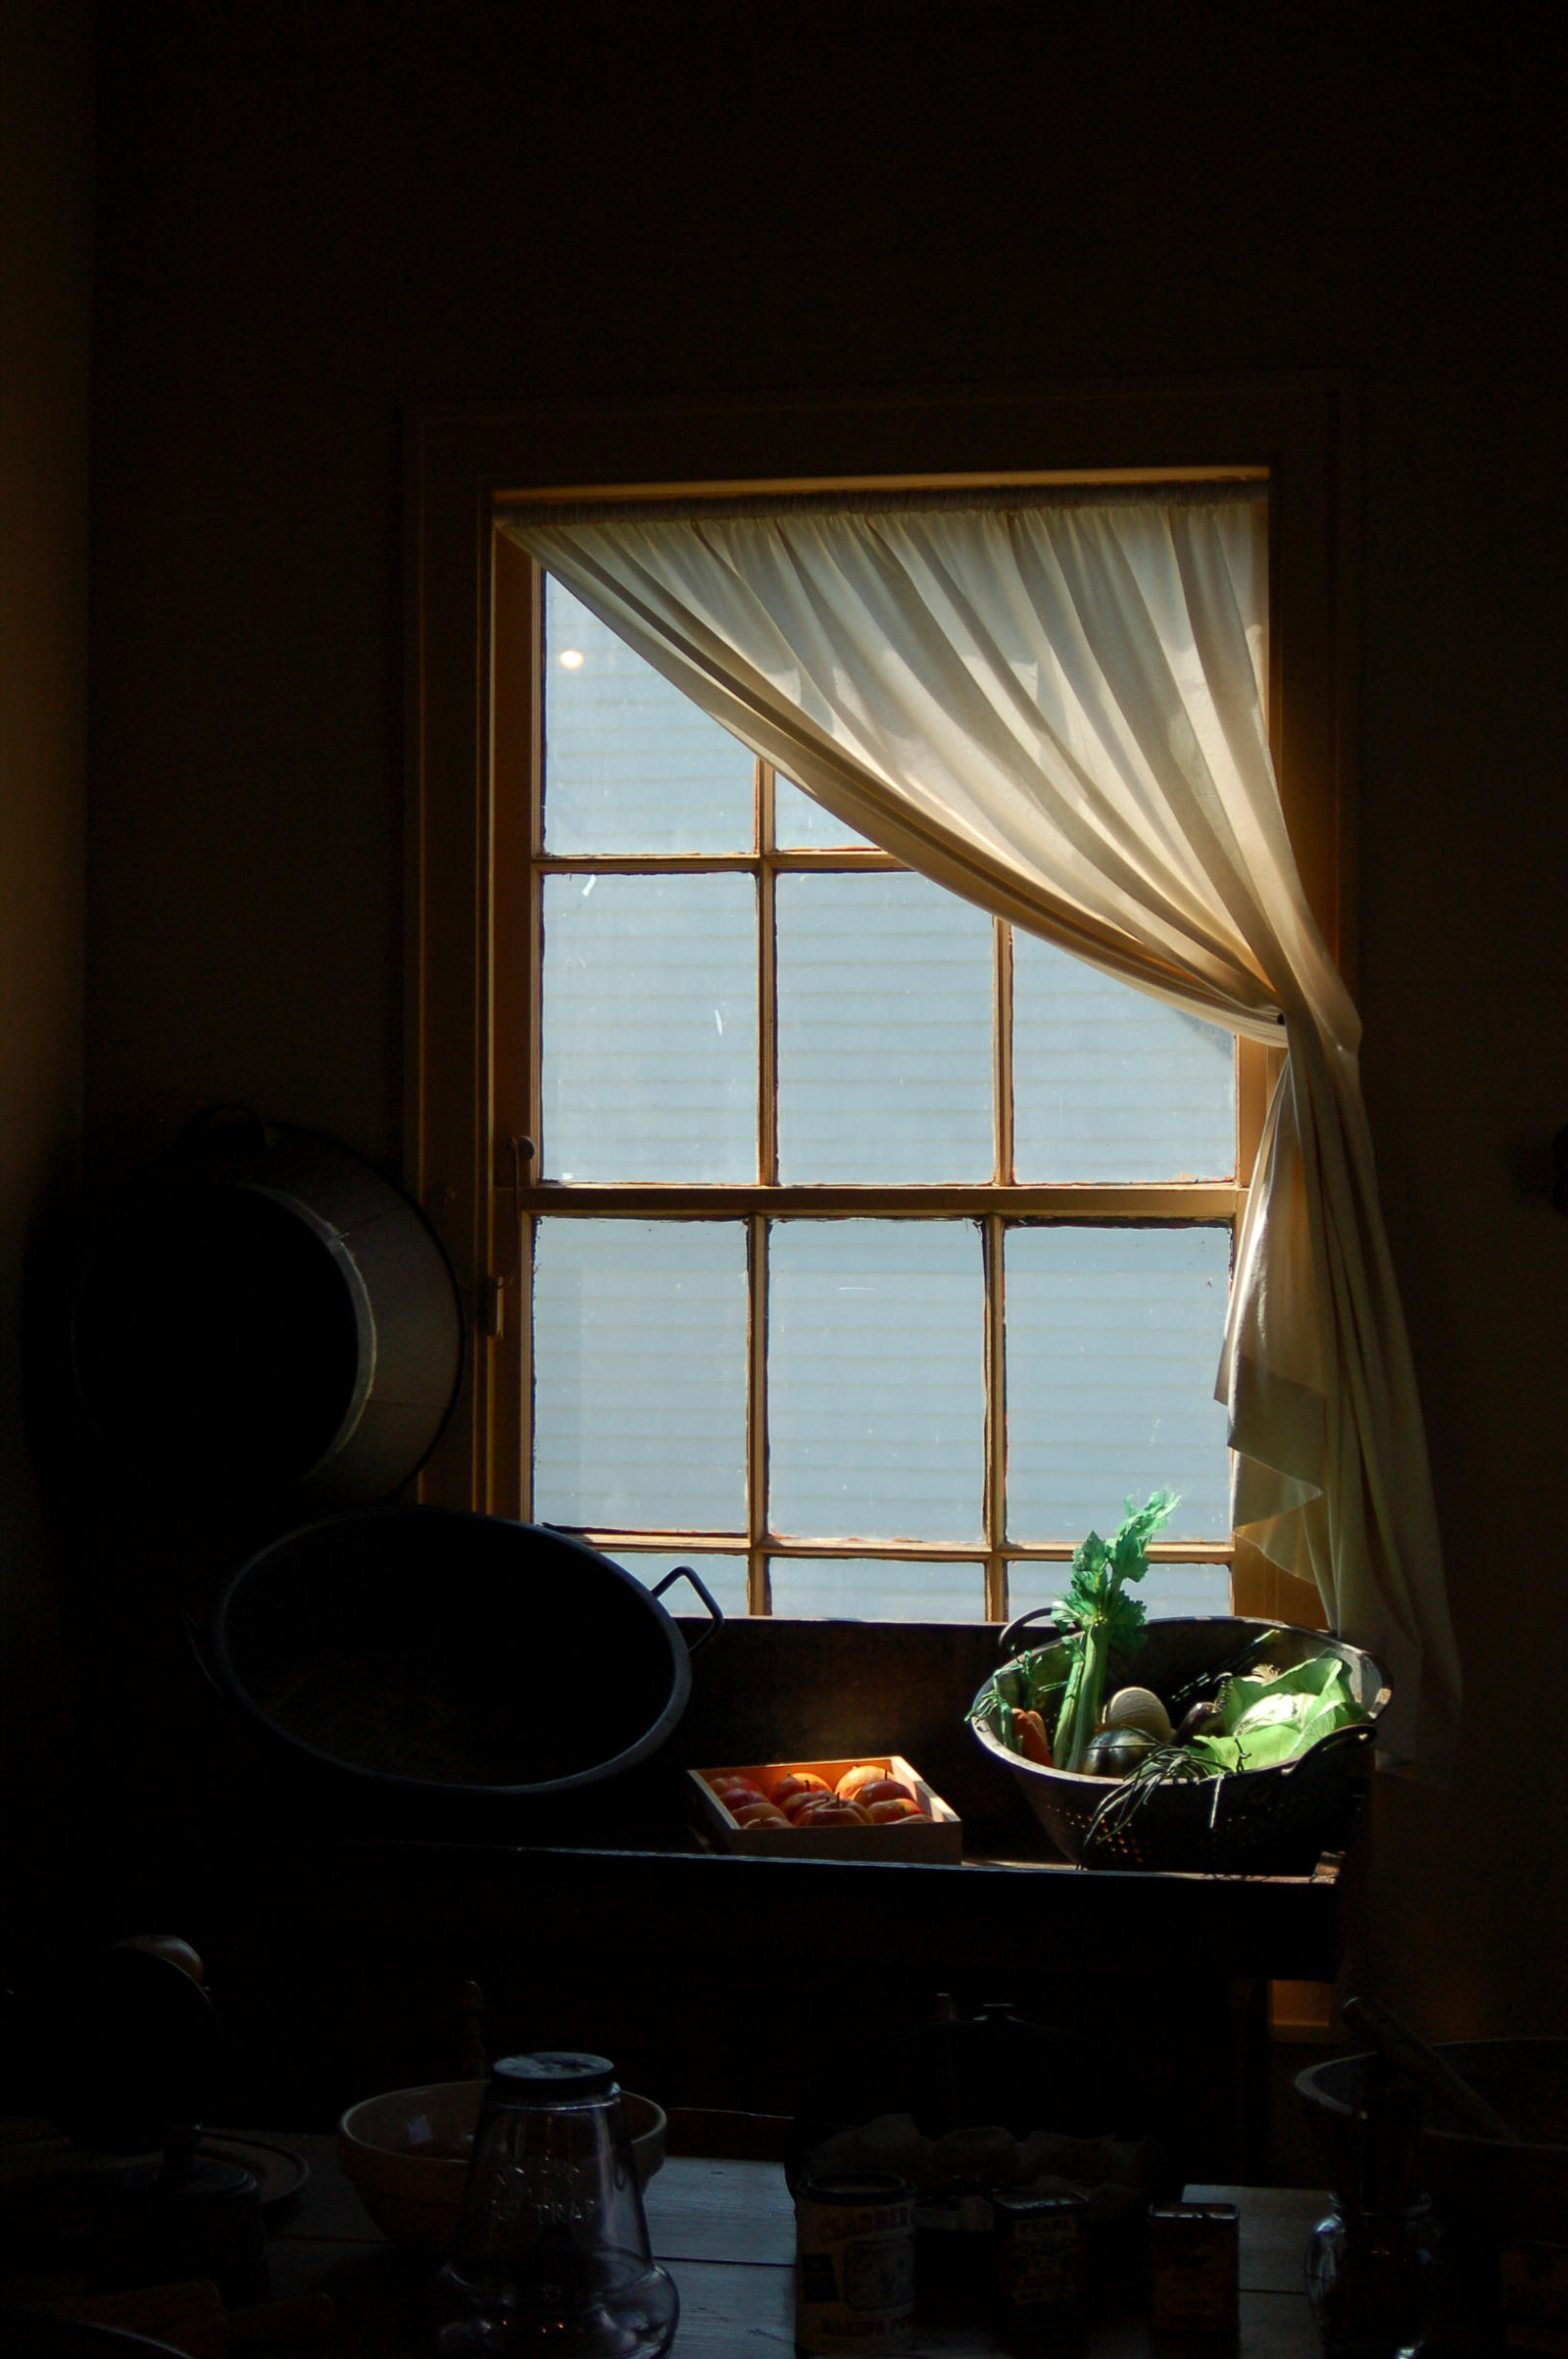 Farmhouse Window by SalsolaStock on DeviantArt